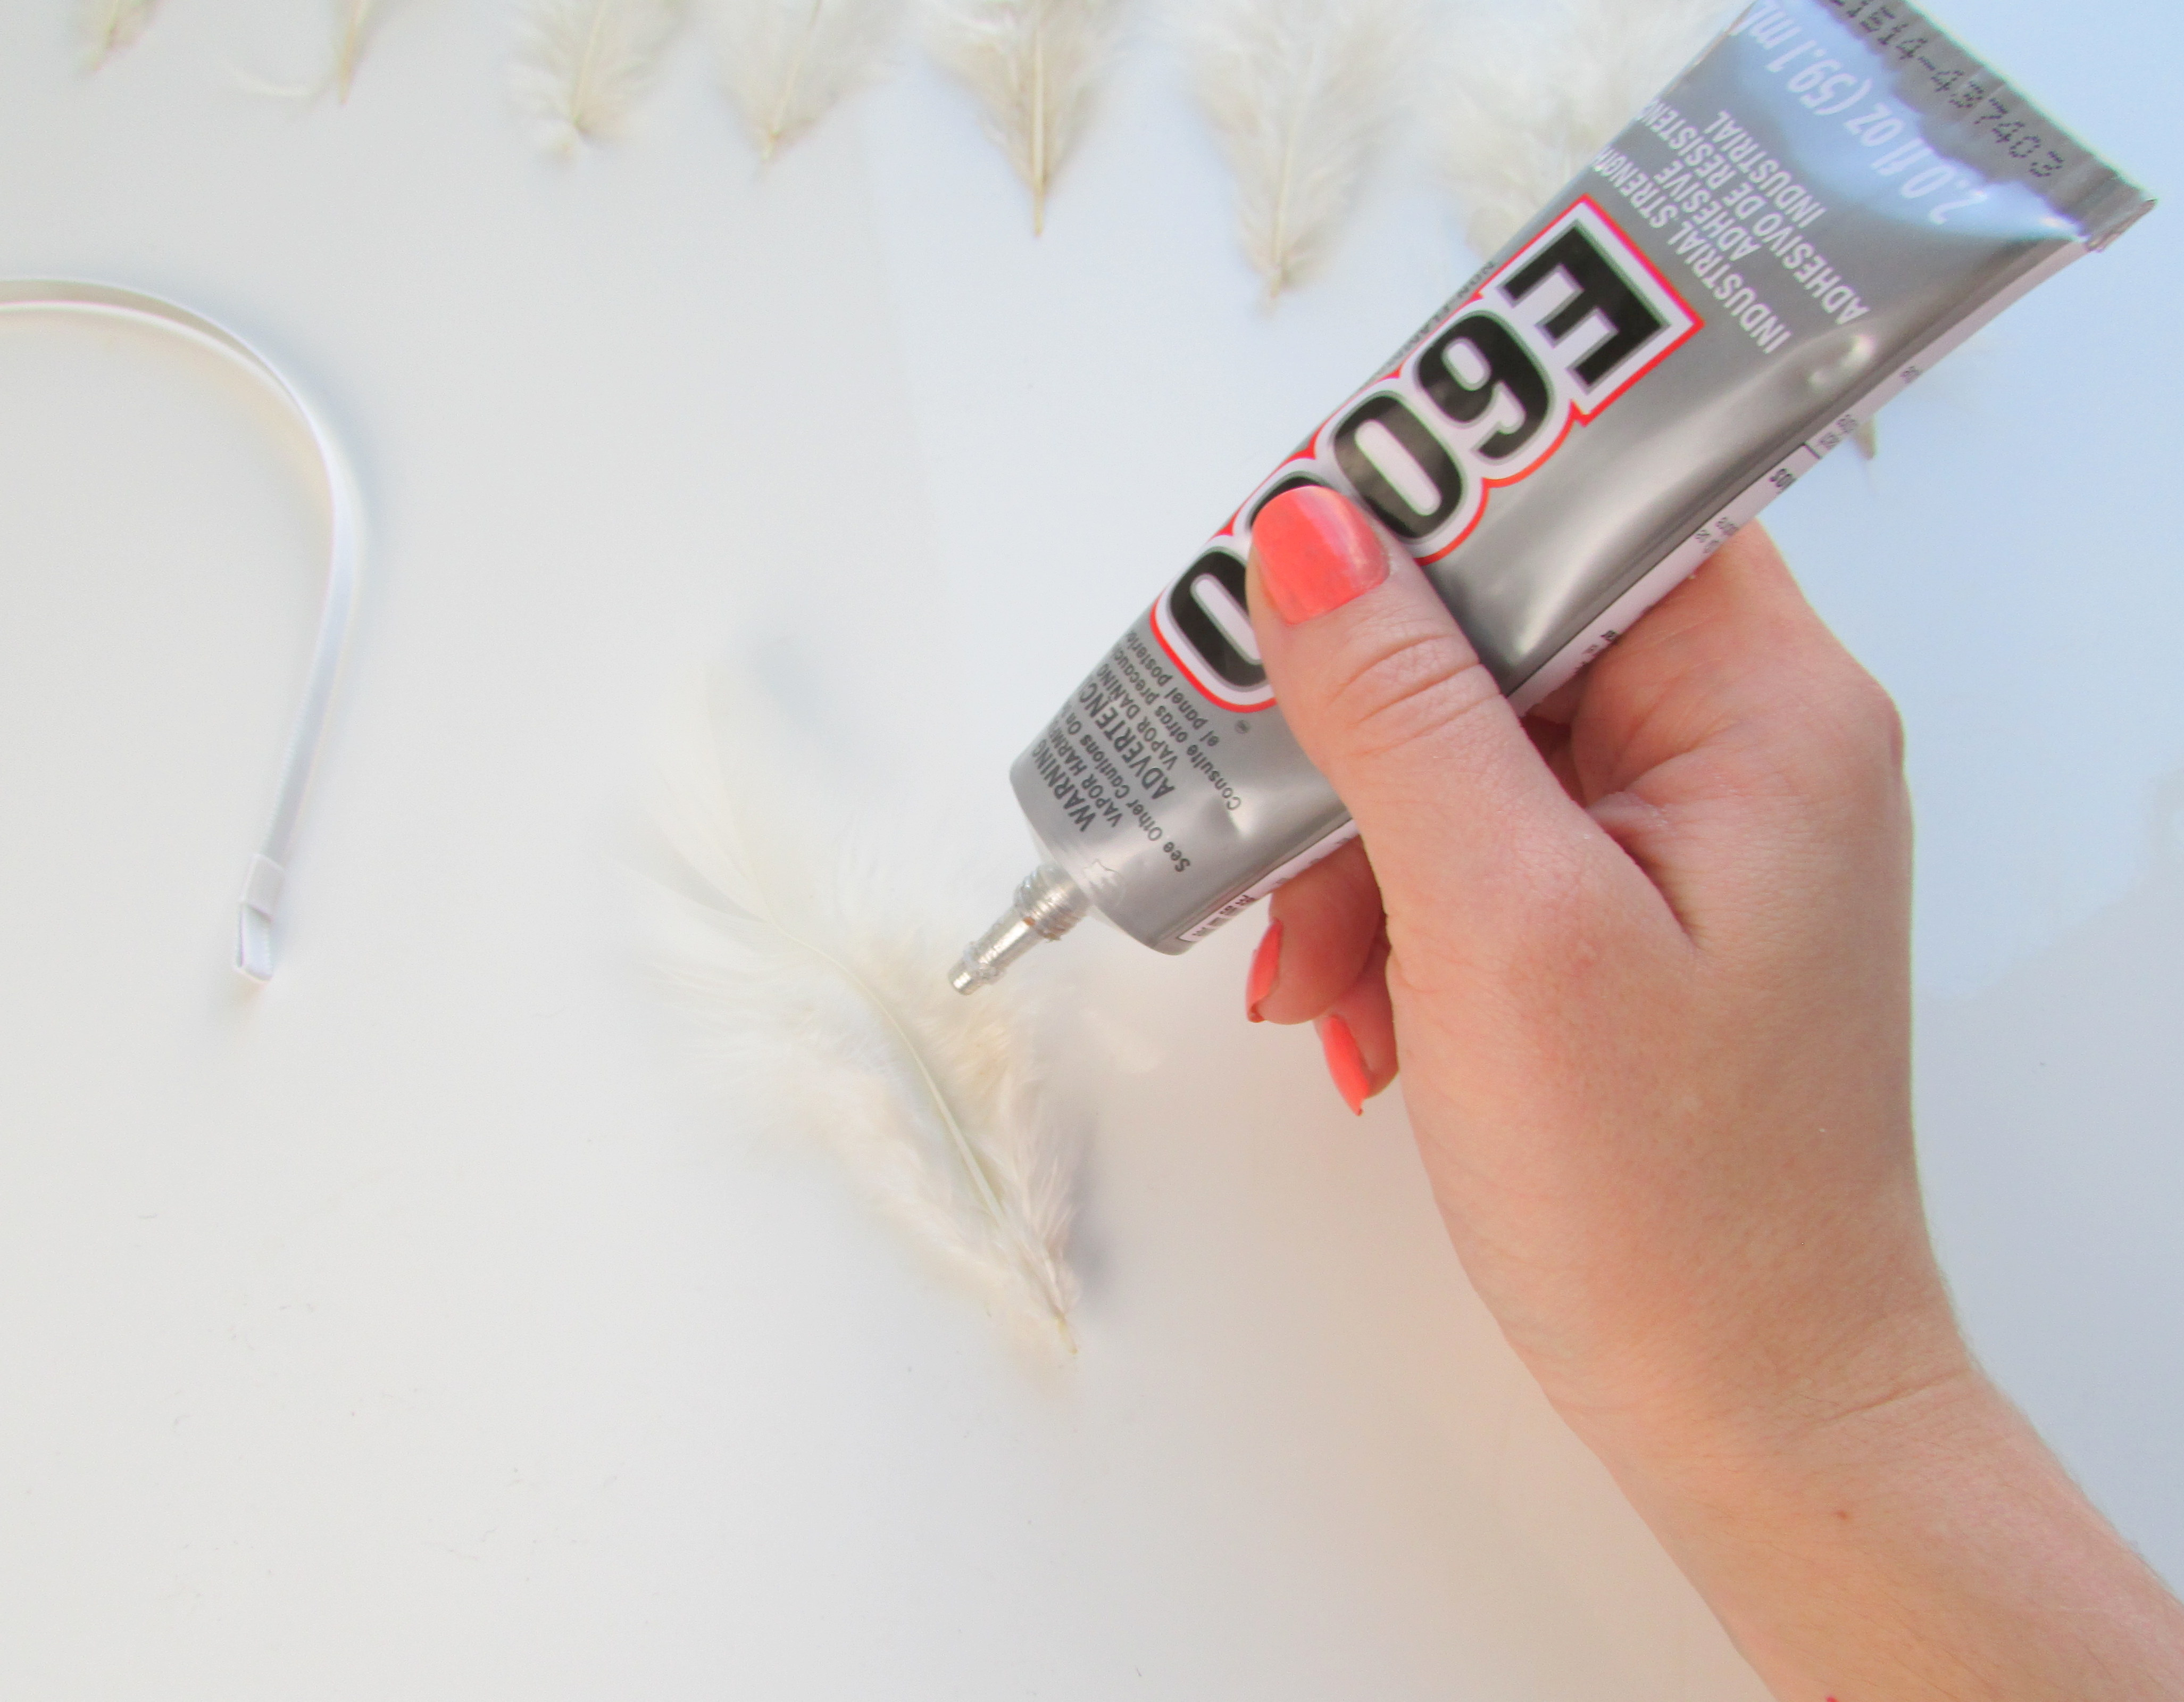 Glueing the feather with adhesive